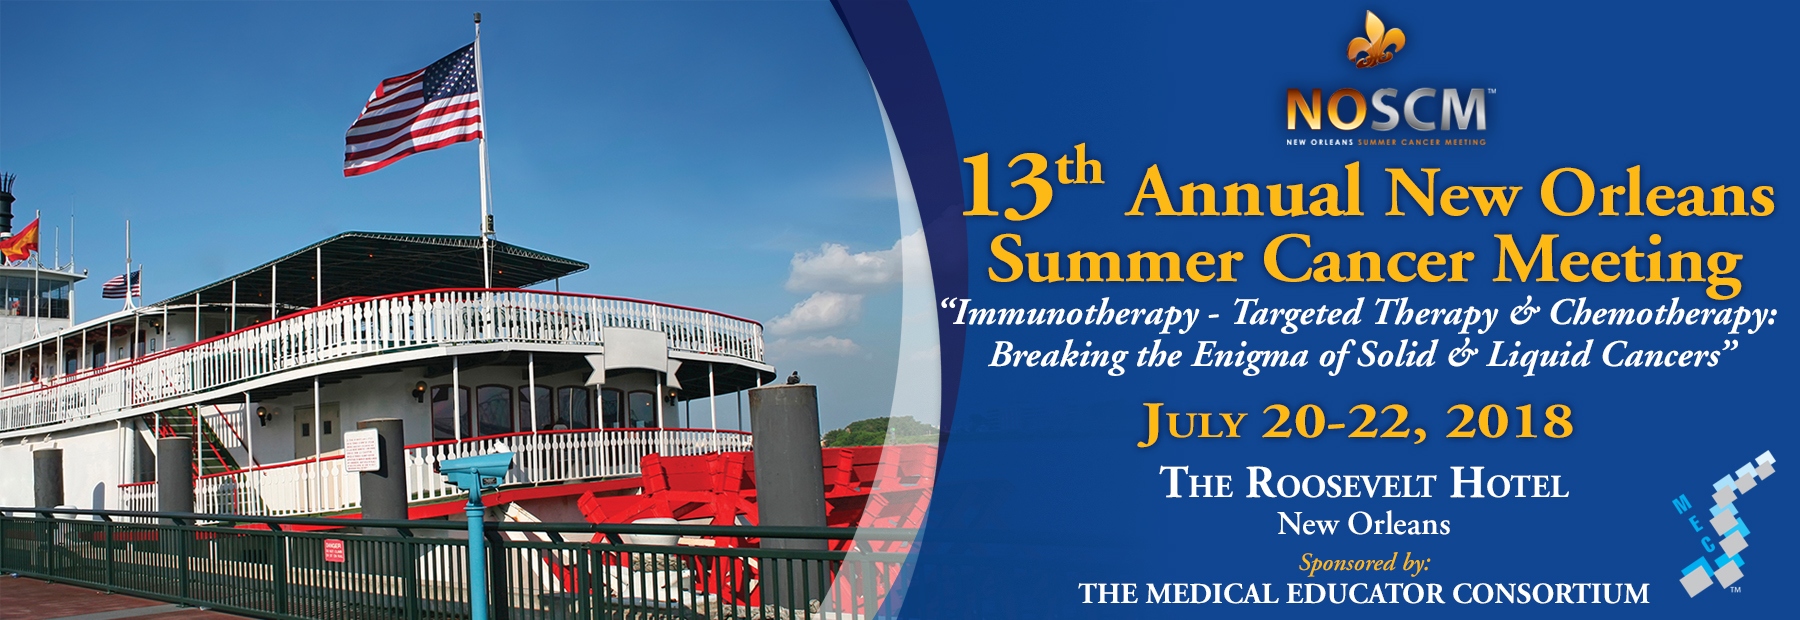 13th Annual New Orleans  Summer Cancer Meeting